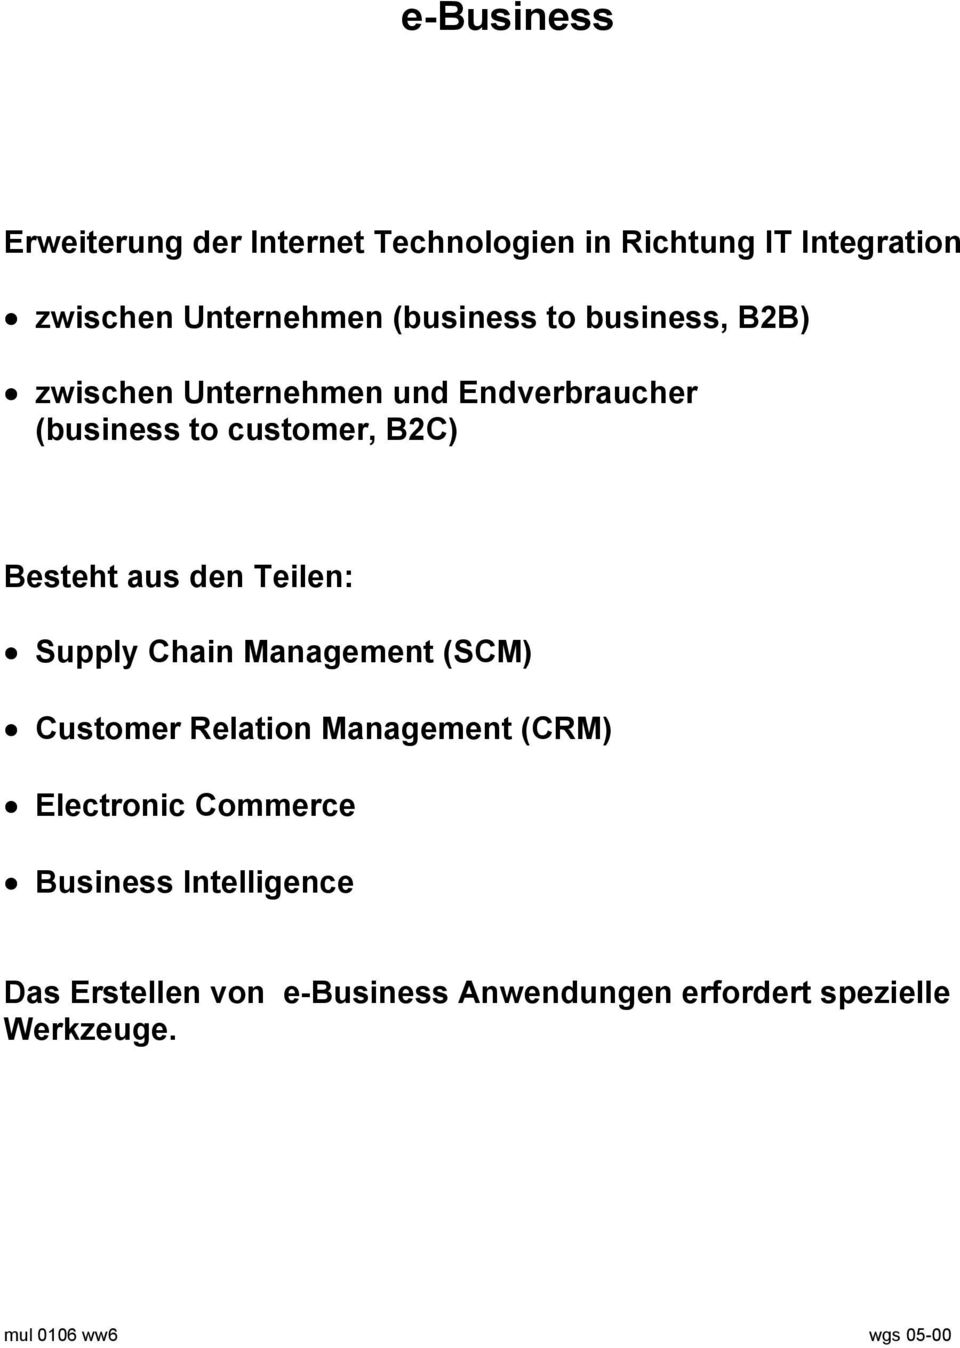 aus den Teilen: Supply Chain Management (SCM) Customer Relation Management (CRM) Electronic Commerce